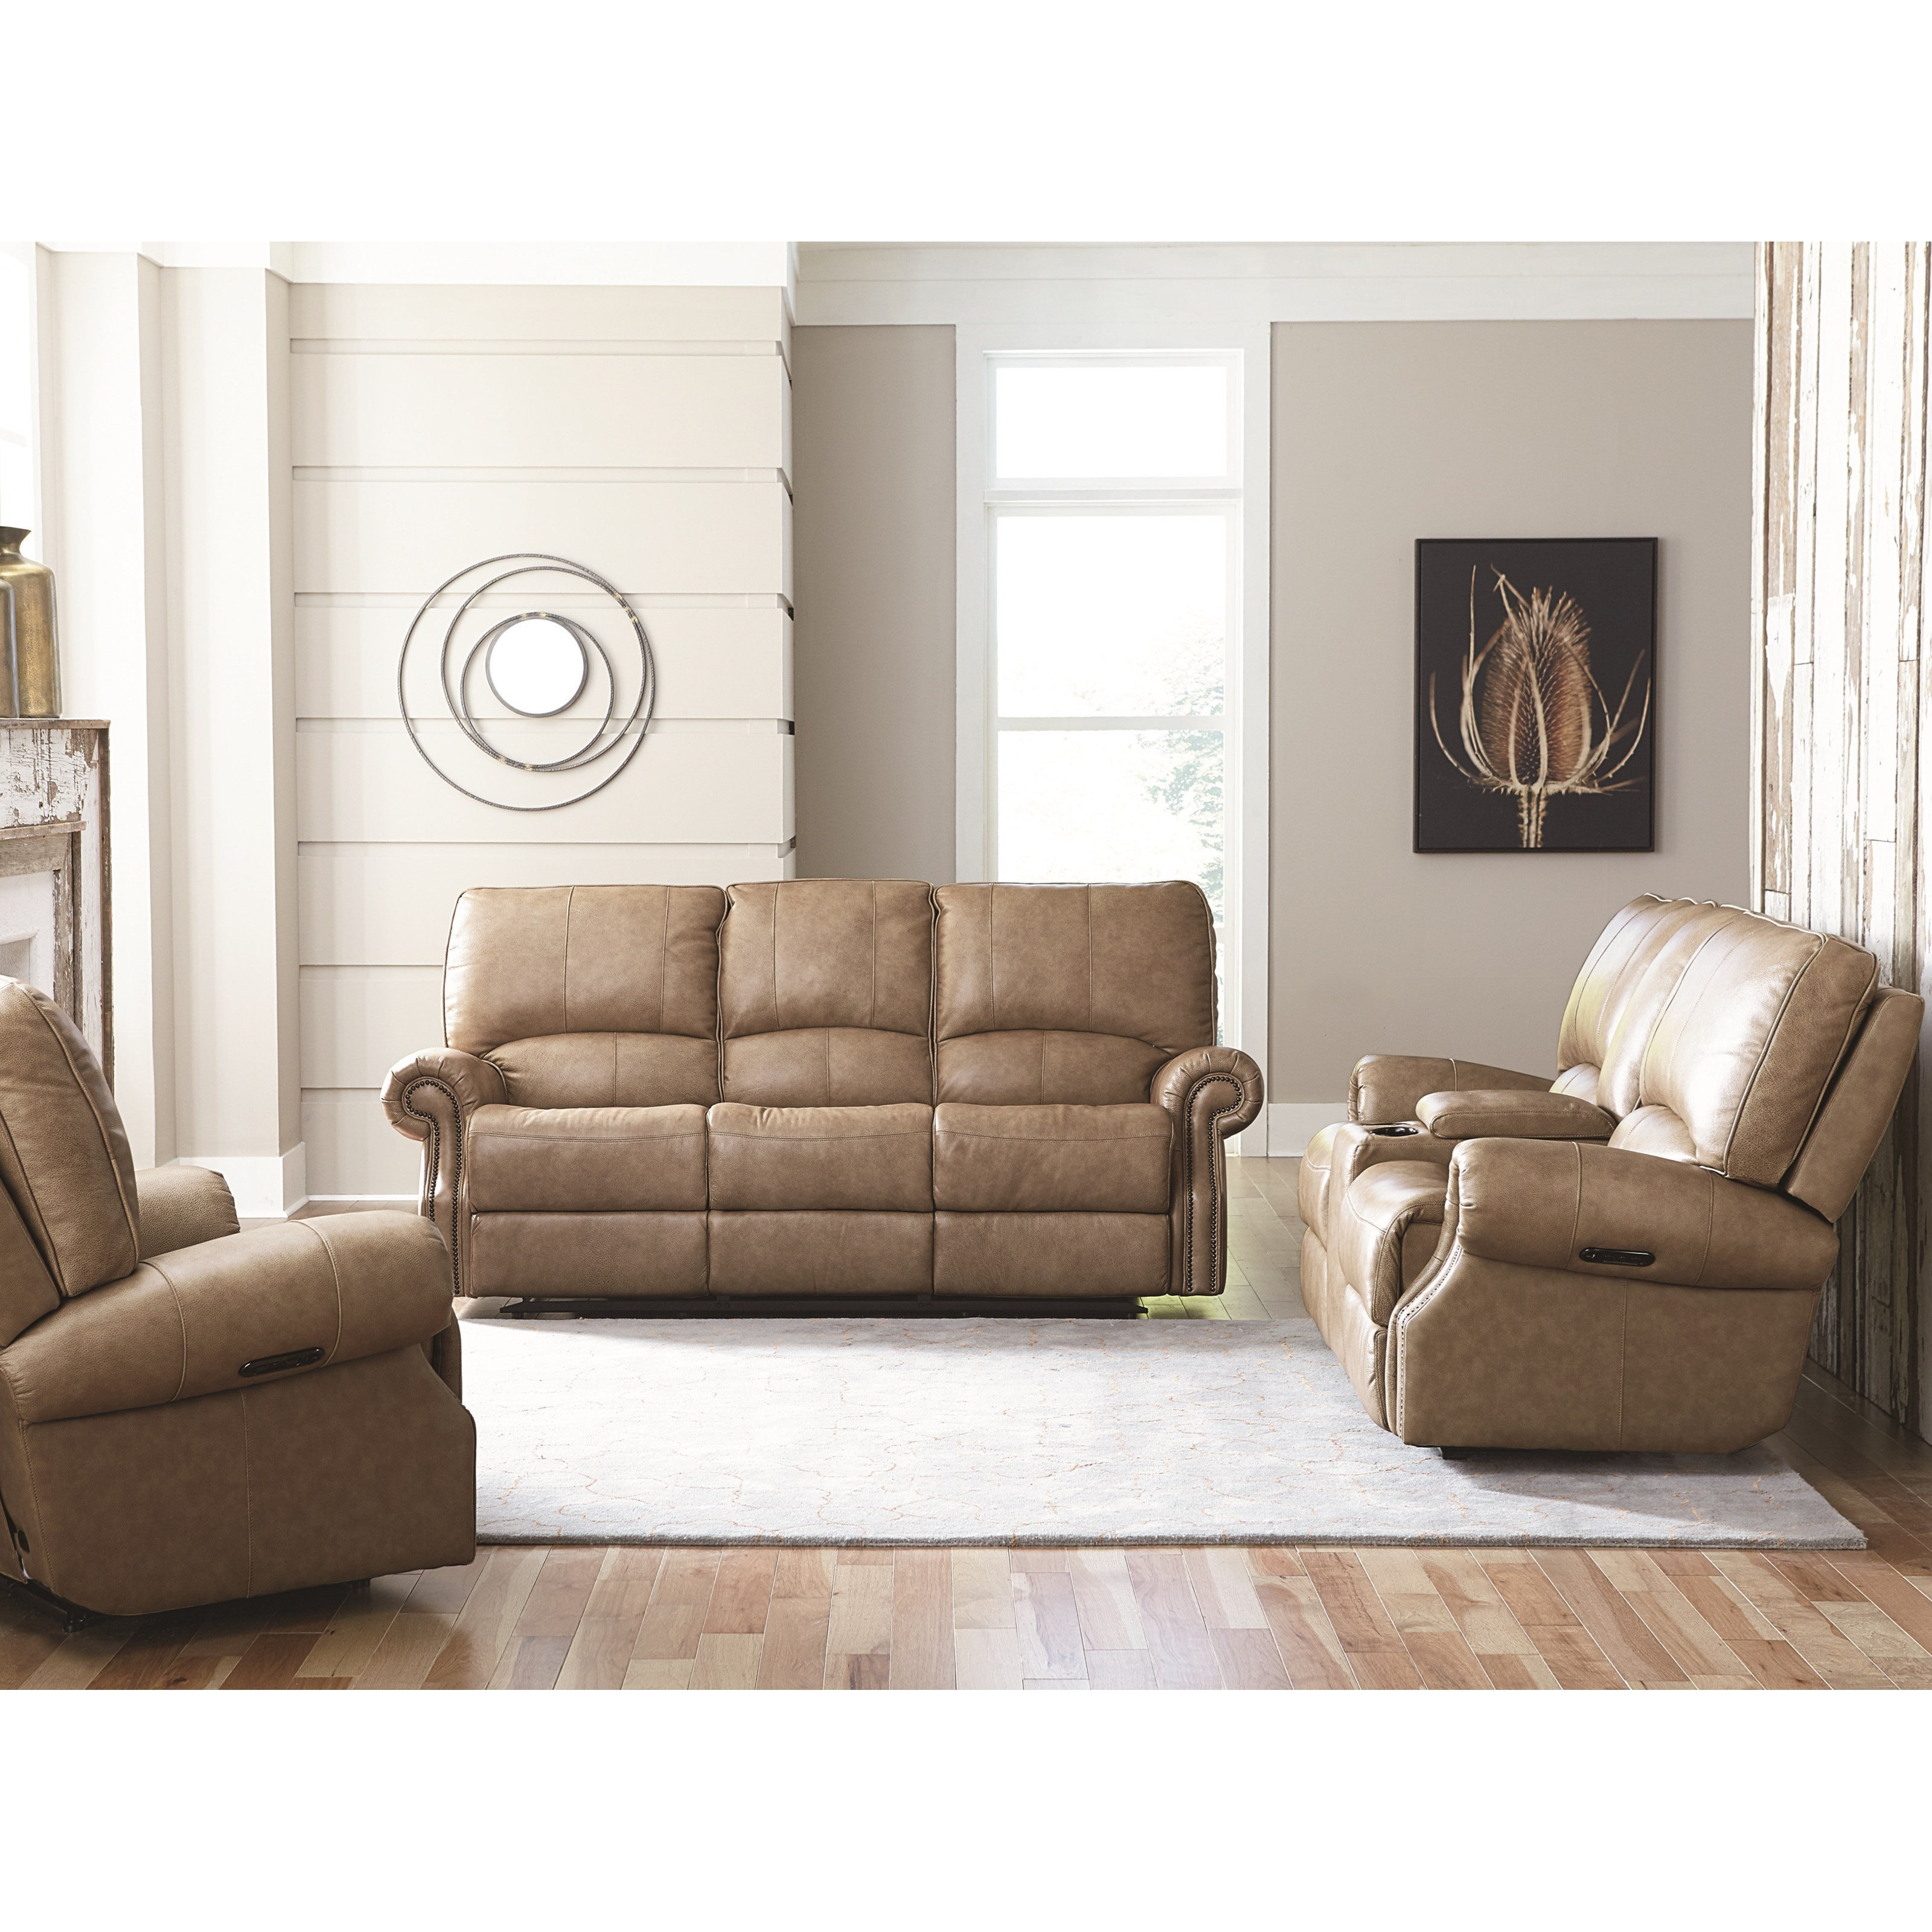 Bassett Furniture Sofas: Transitional Power Motion Sofa With USB Charging